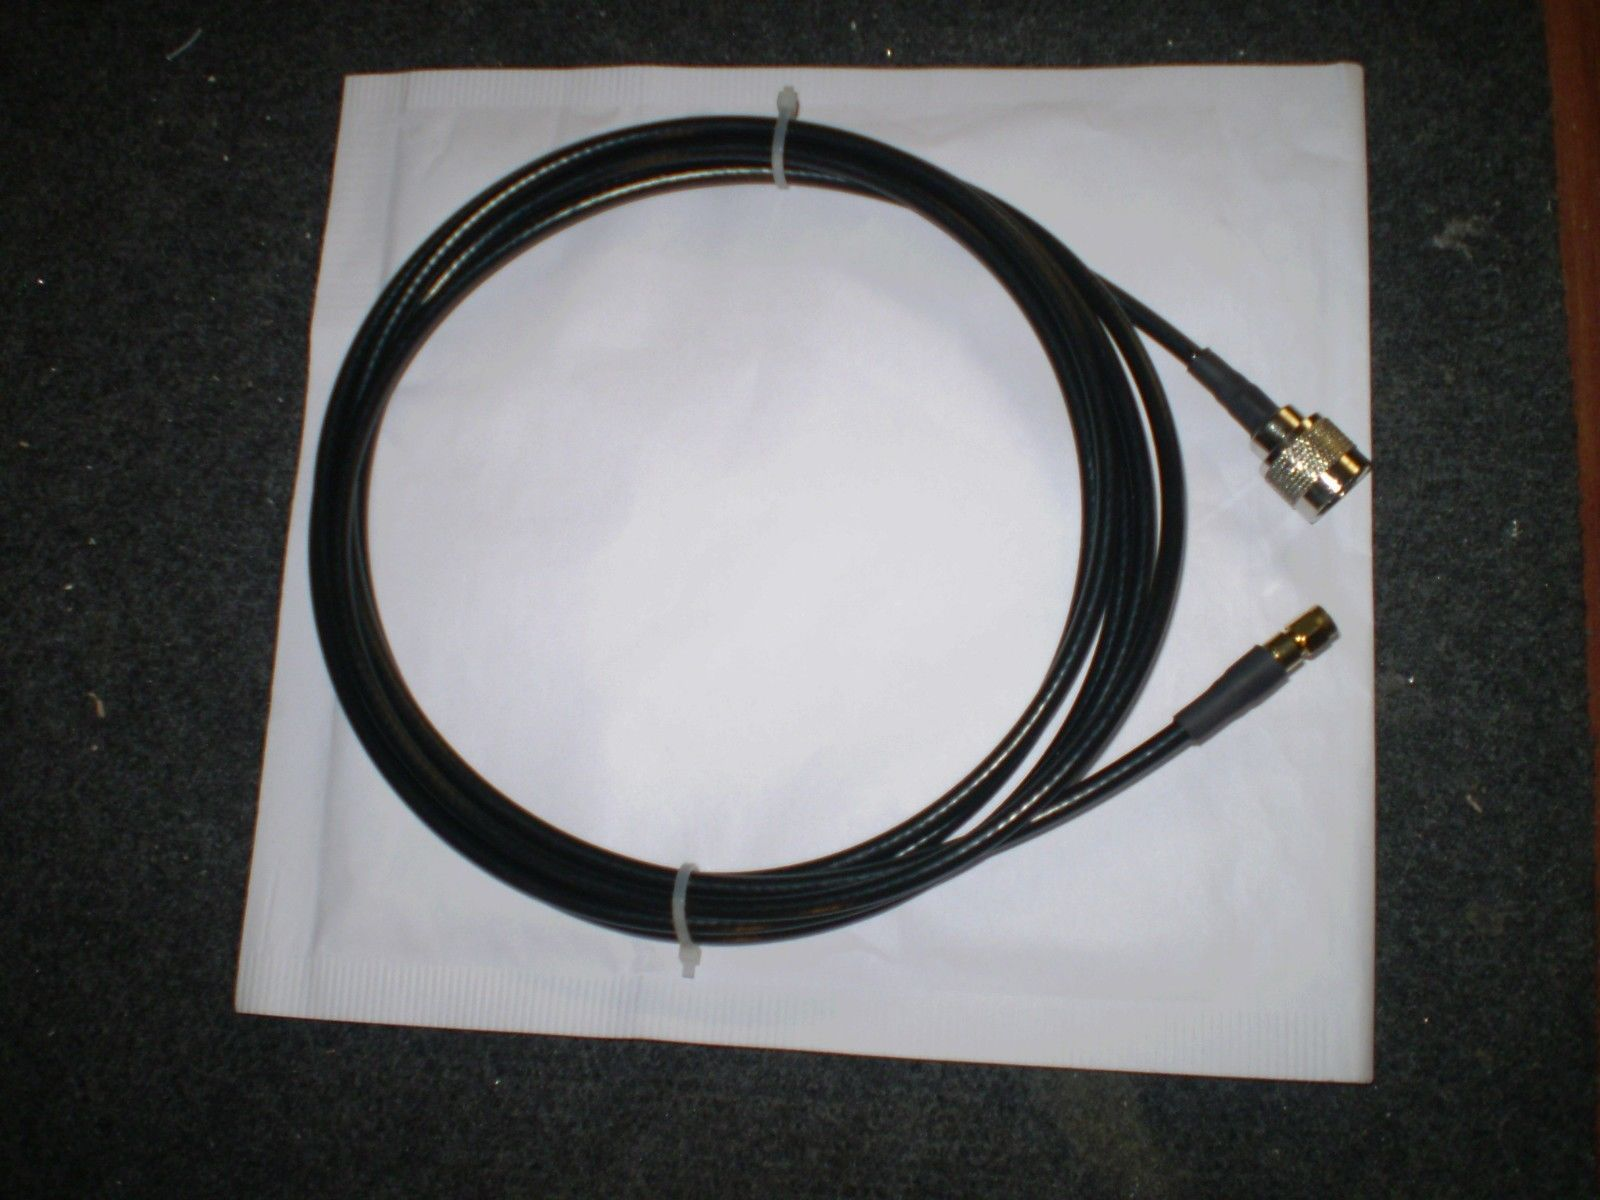 3M H155 BELDEN LOW LOSS CABLE N MALE TO RP SMA FEMALE